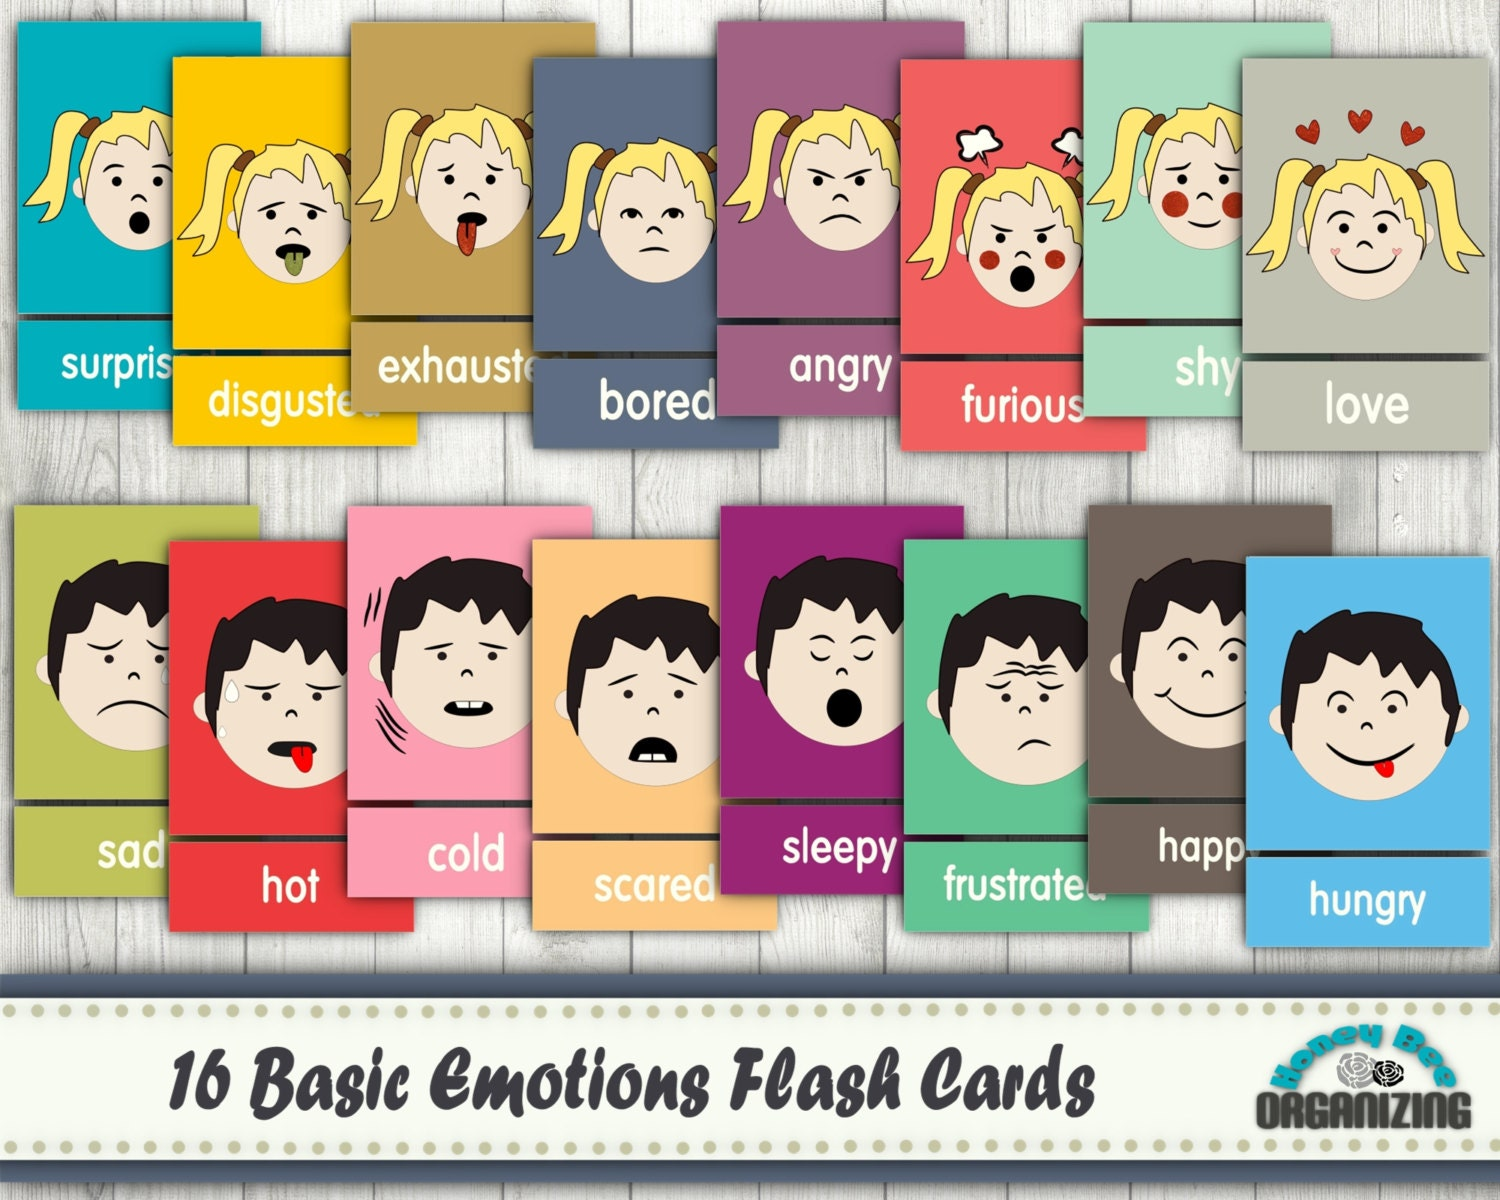 image regarding Feelings Cards Printable called Inner thoughts Flash Playing cards - Simple Feelings Playing cards - Blank Playing cards - Encounter Term Playing cards - Emotions Term Flash Playing cards